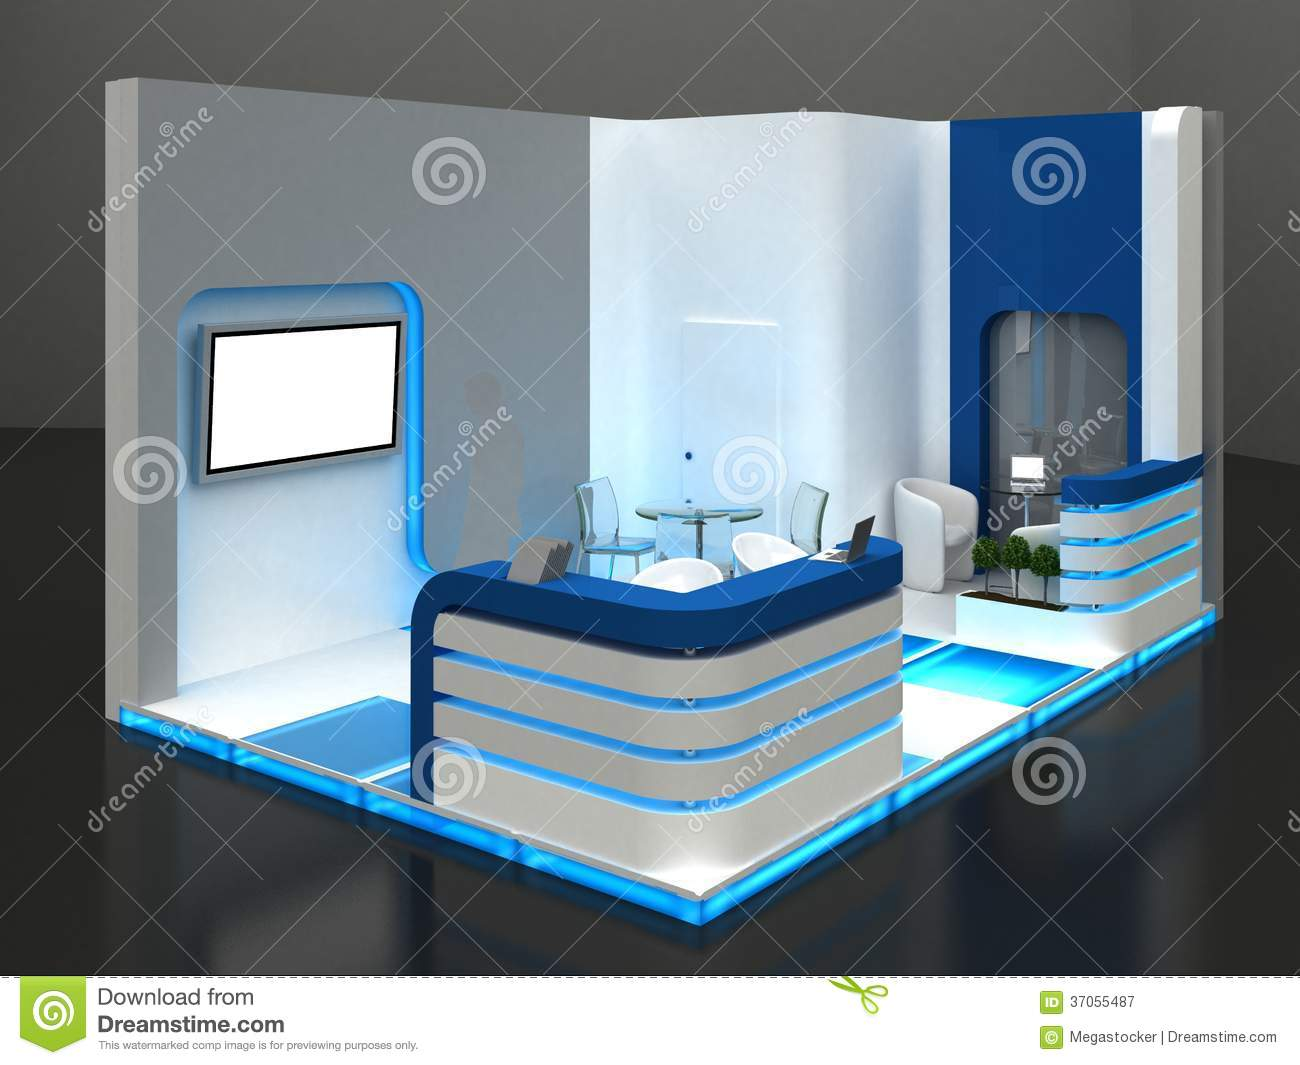 Exhibition Stand Design Sample : Exhibition stand interior exterior sample royalty free